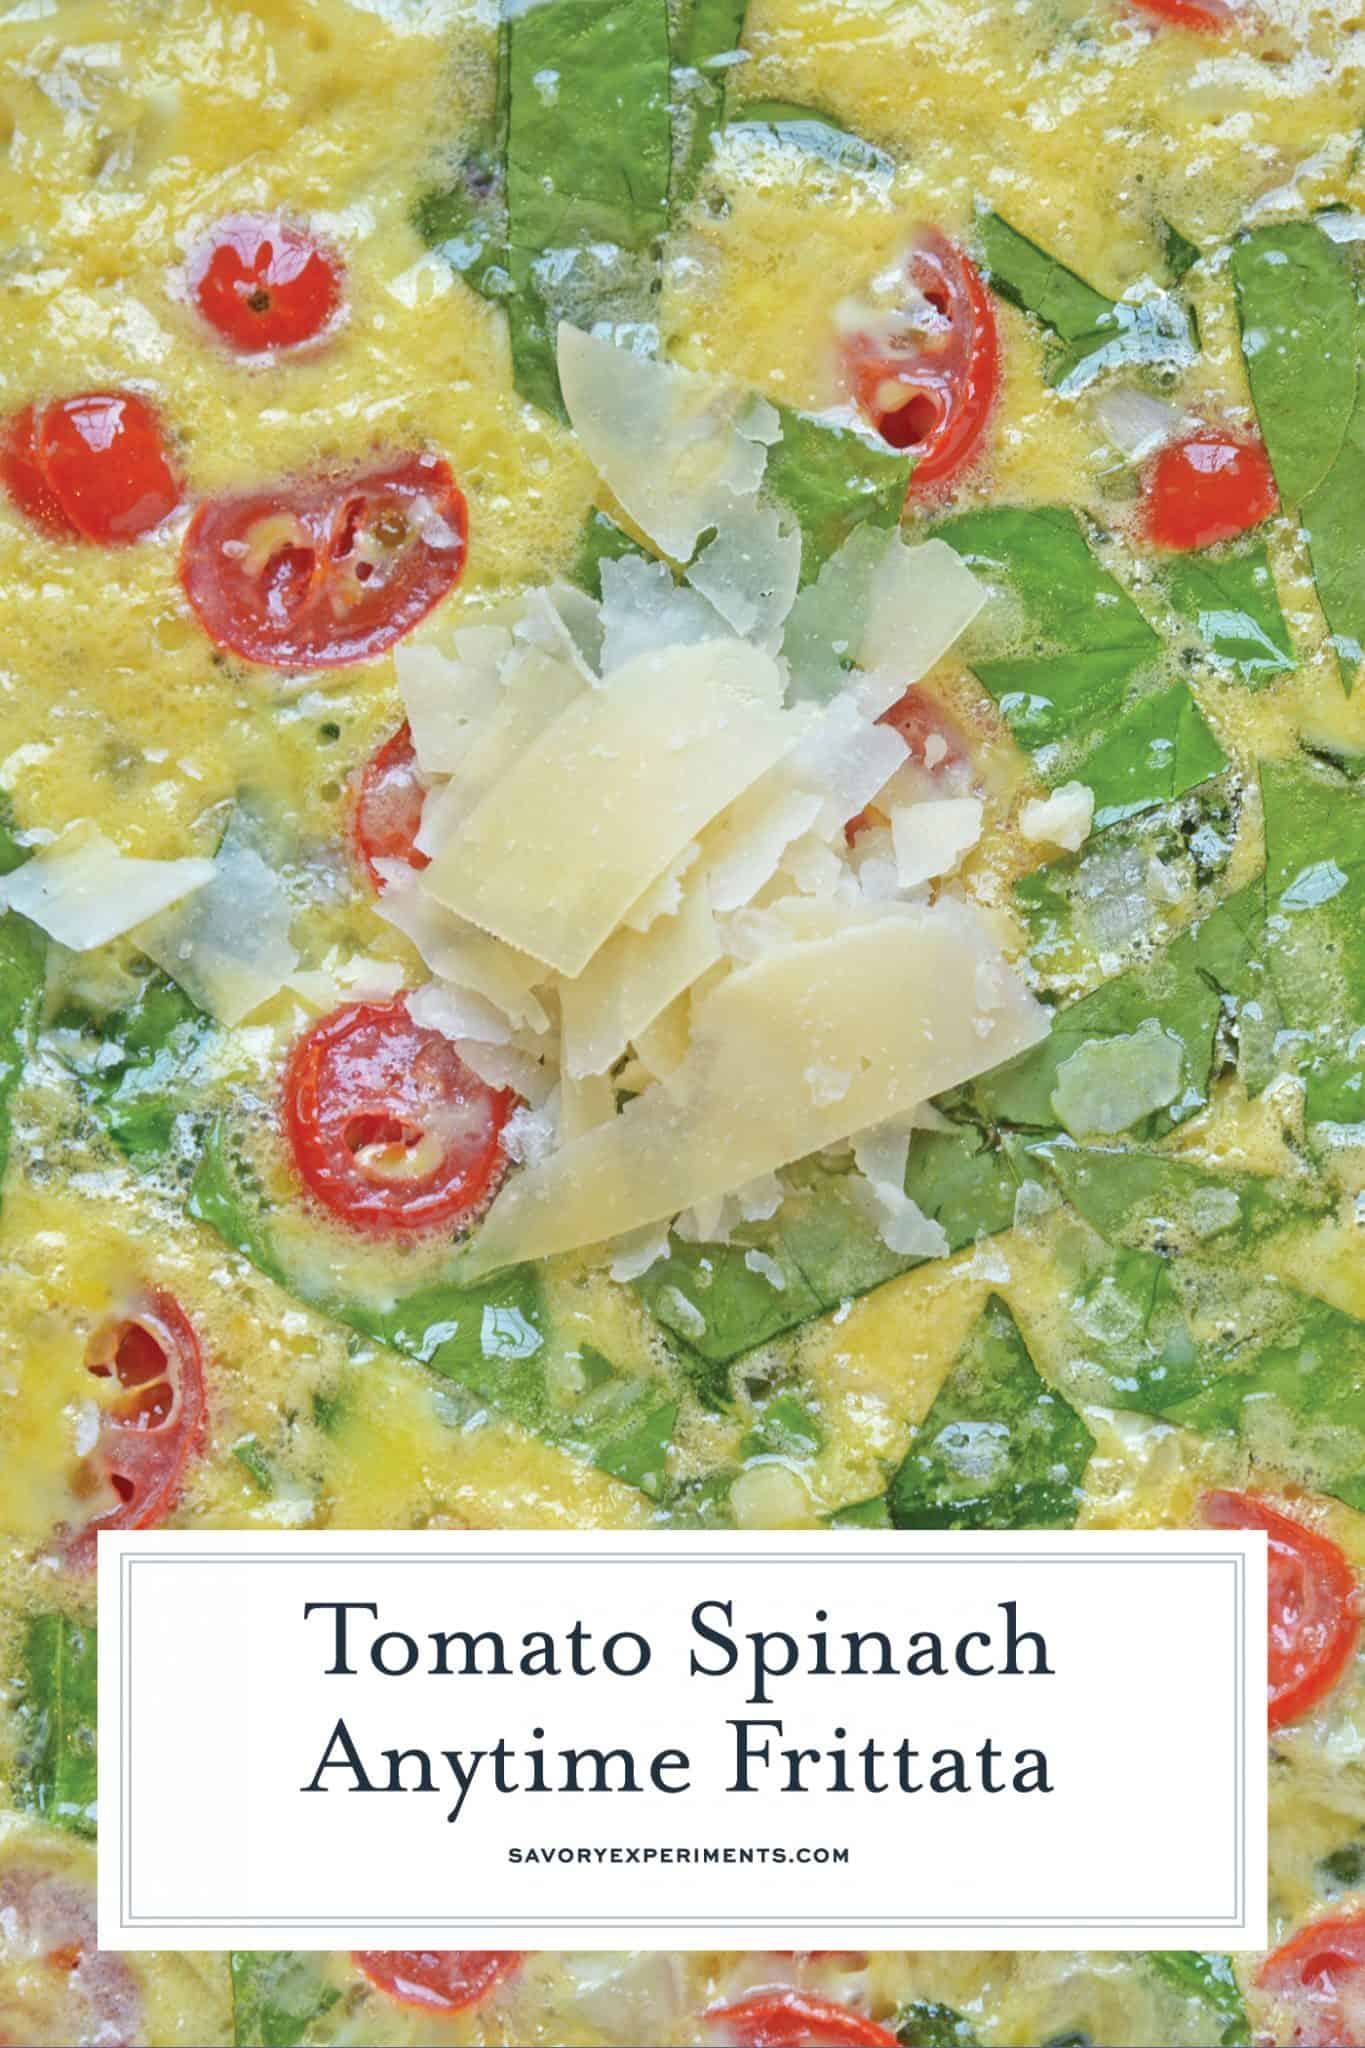 This Tomato Spinach Frittata recipe is excellent for breakfast or brunch, packed full of delicious flavors from tomatoes, spinach, shallots, and parmesan cheese! #spinachfrittata #breakfastfrittatarecipe www.savoryexperiments.com